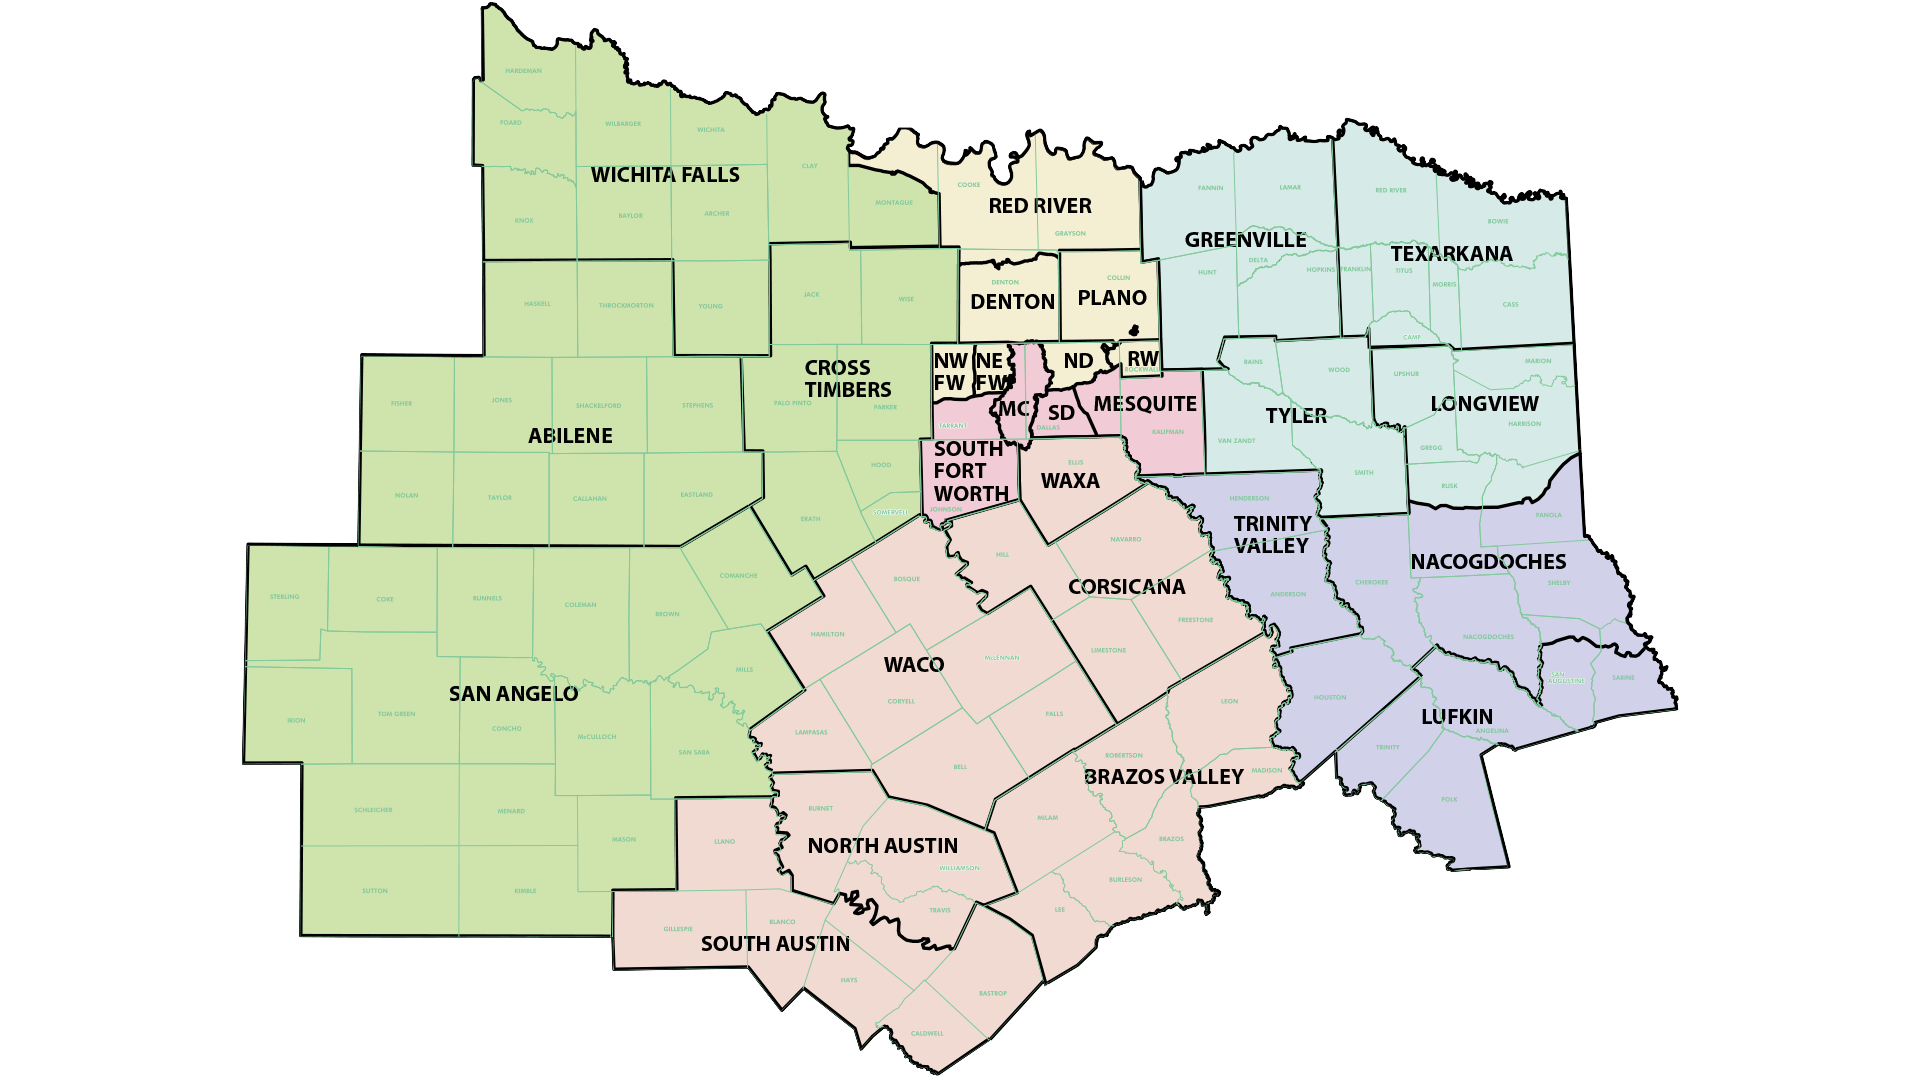 District Map Of Texas.District Map North Texas District Council Of The Assemblies Of God